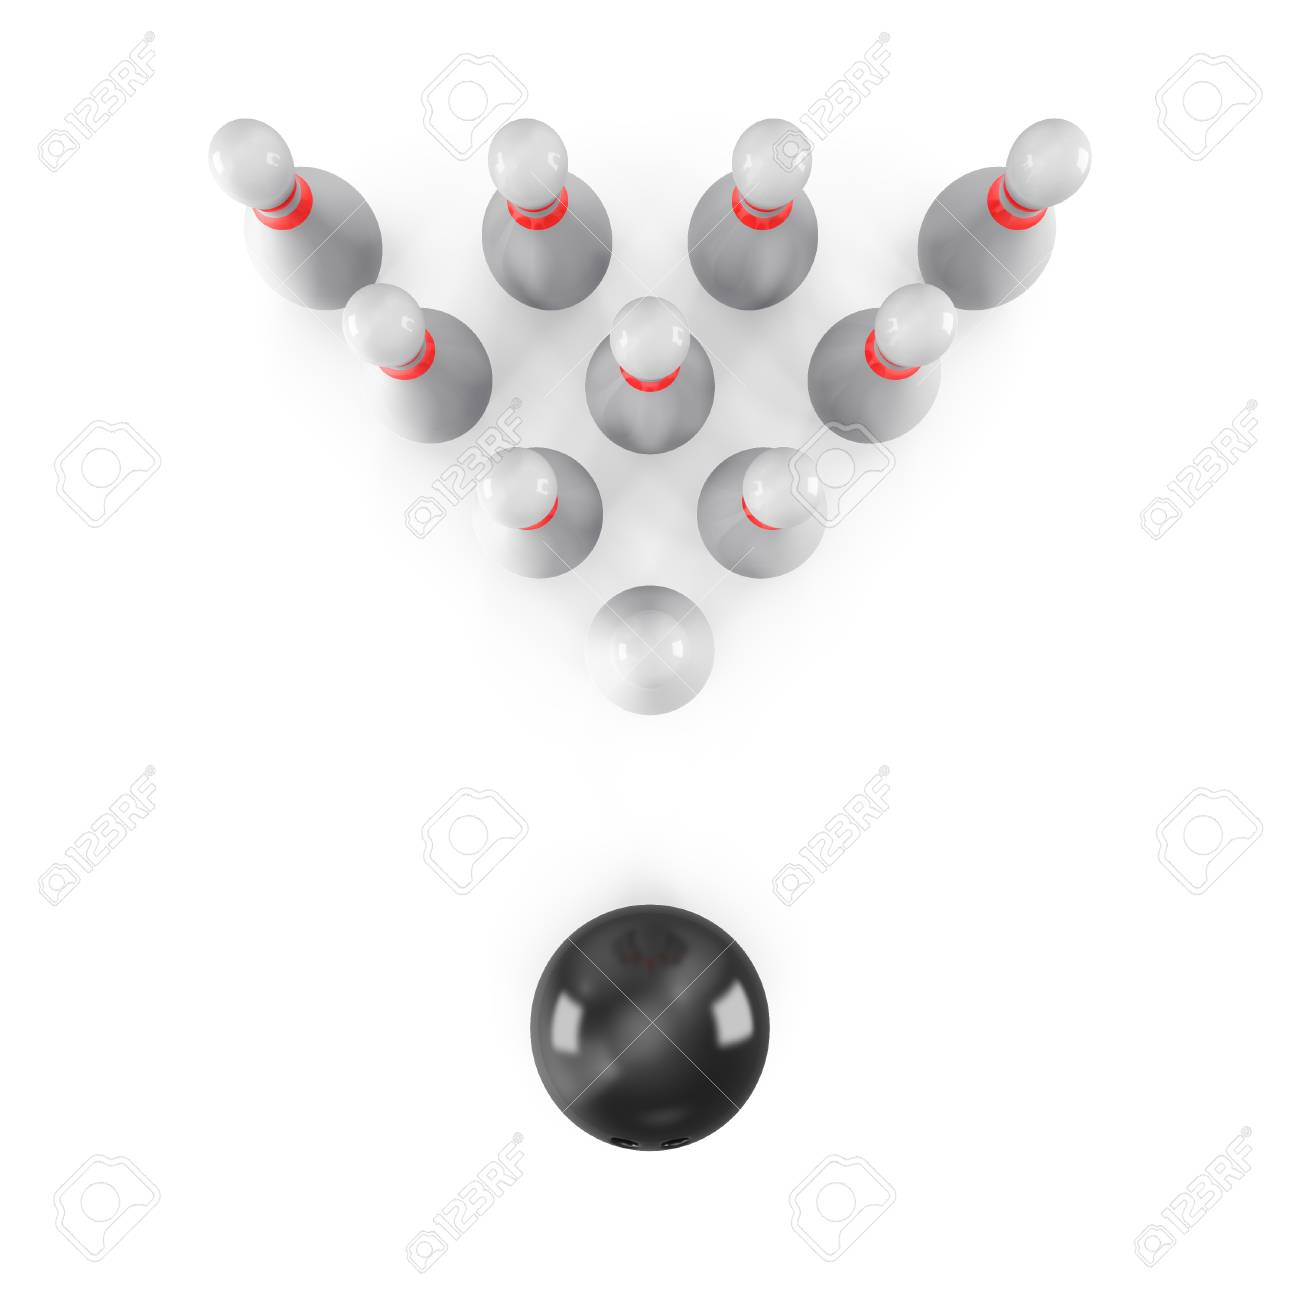 Bowling Ball with pins isolated on white background. With shadow